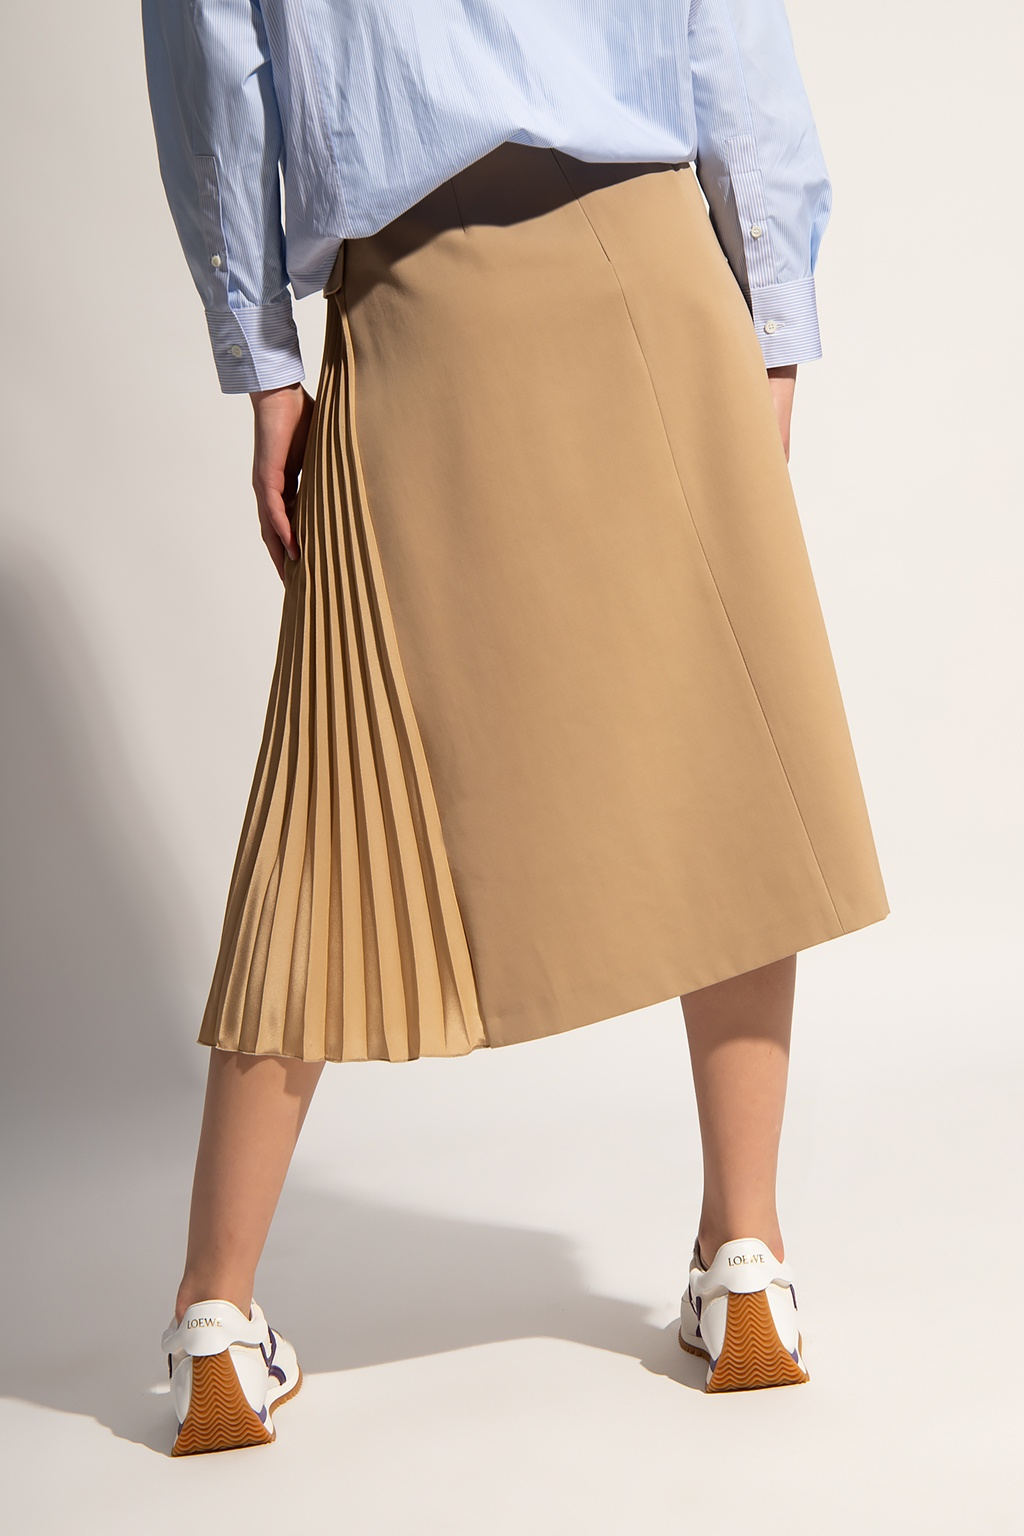 Red Valentino Skirt with pockets